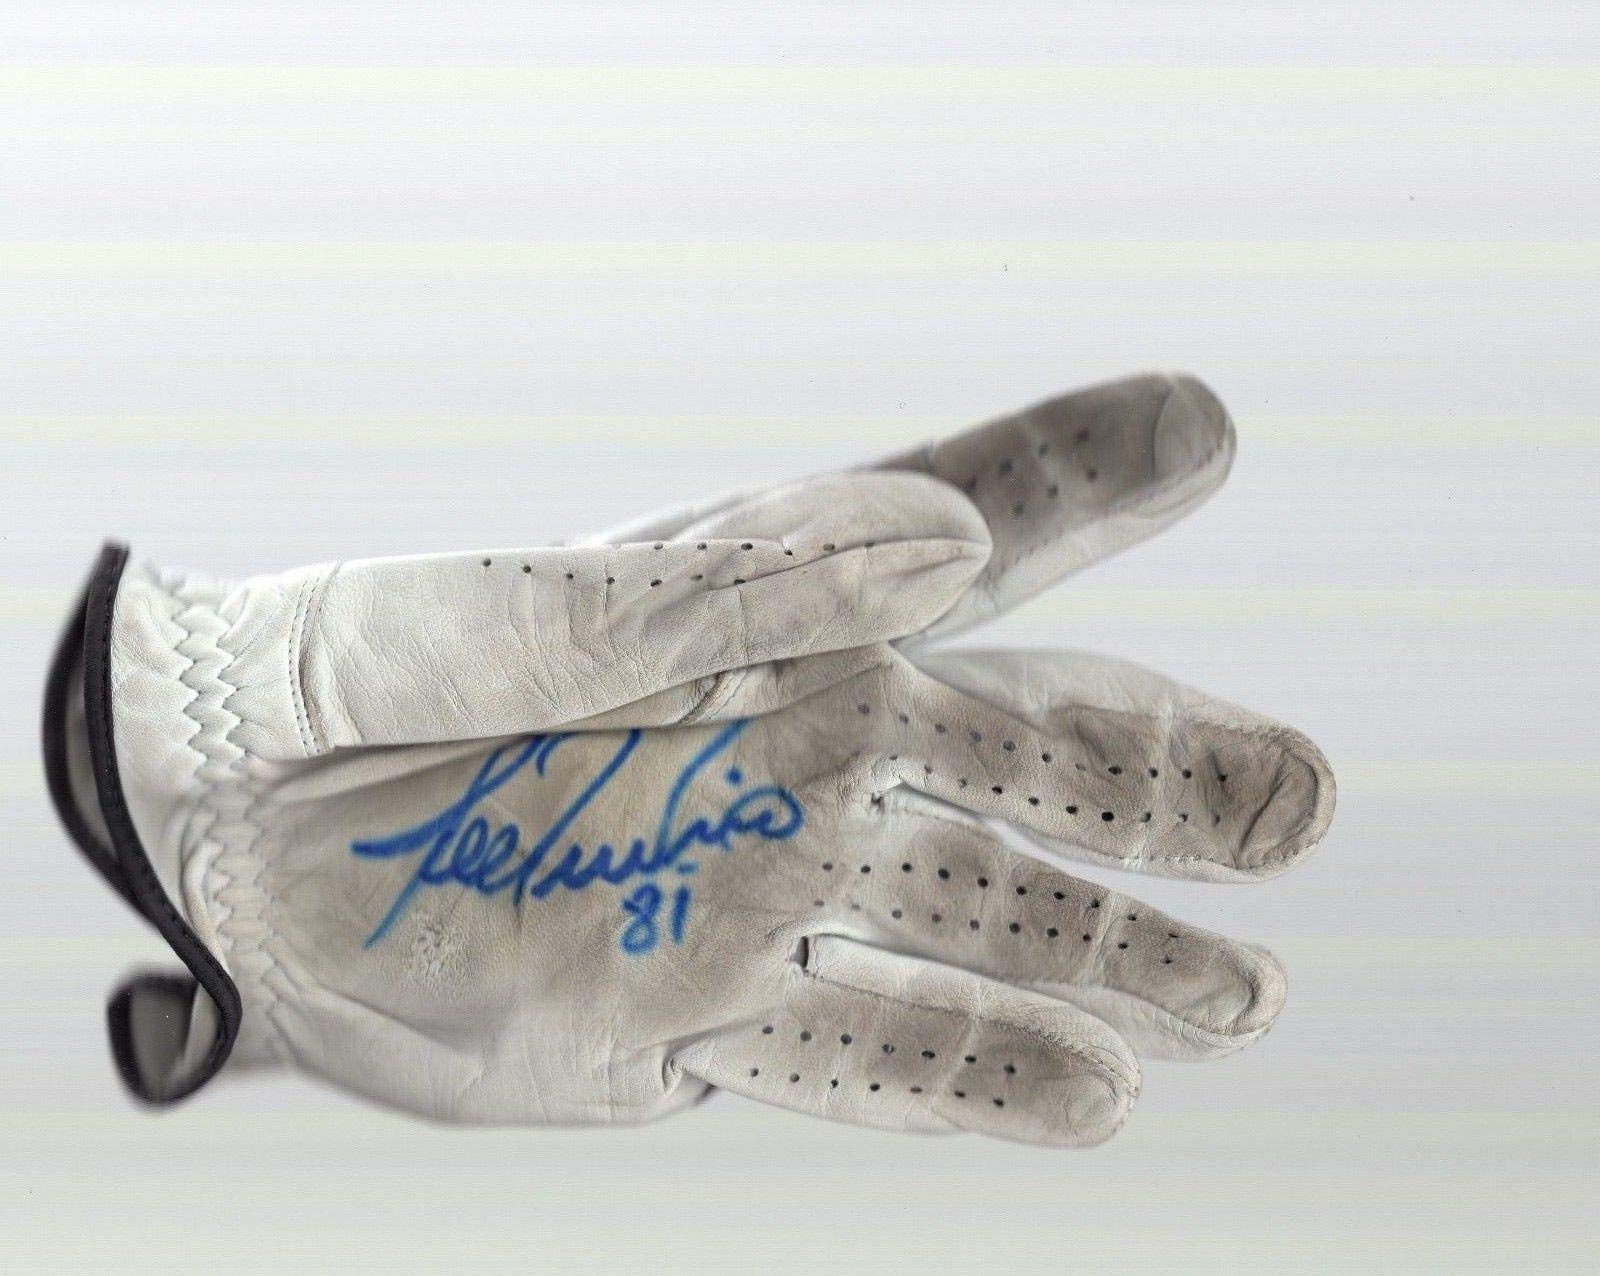 Lee Trevino Hand Signed And Used Golf Glove 6x Major Champion JSA Certified Autographed Golf Gloves